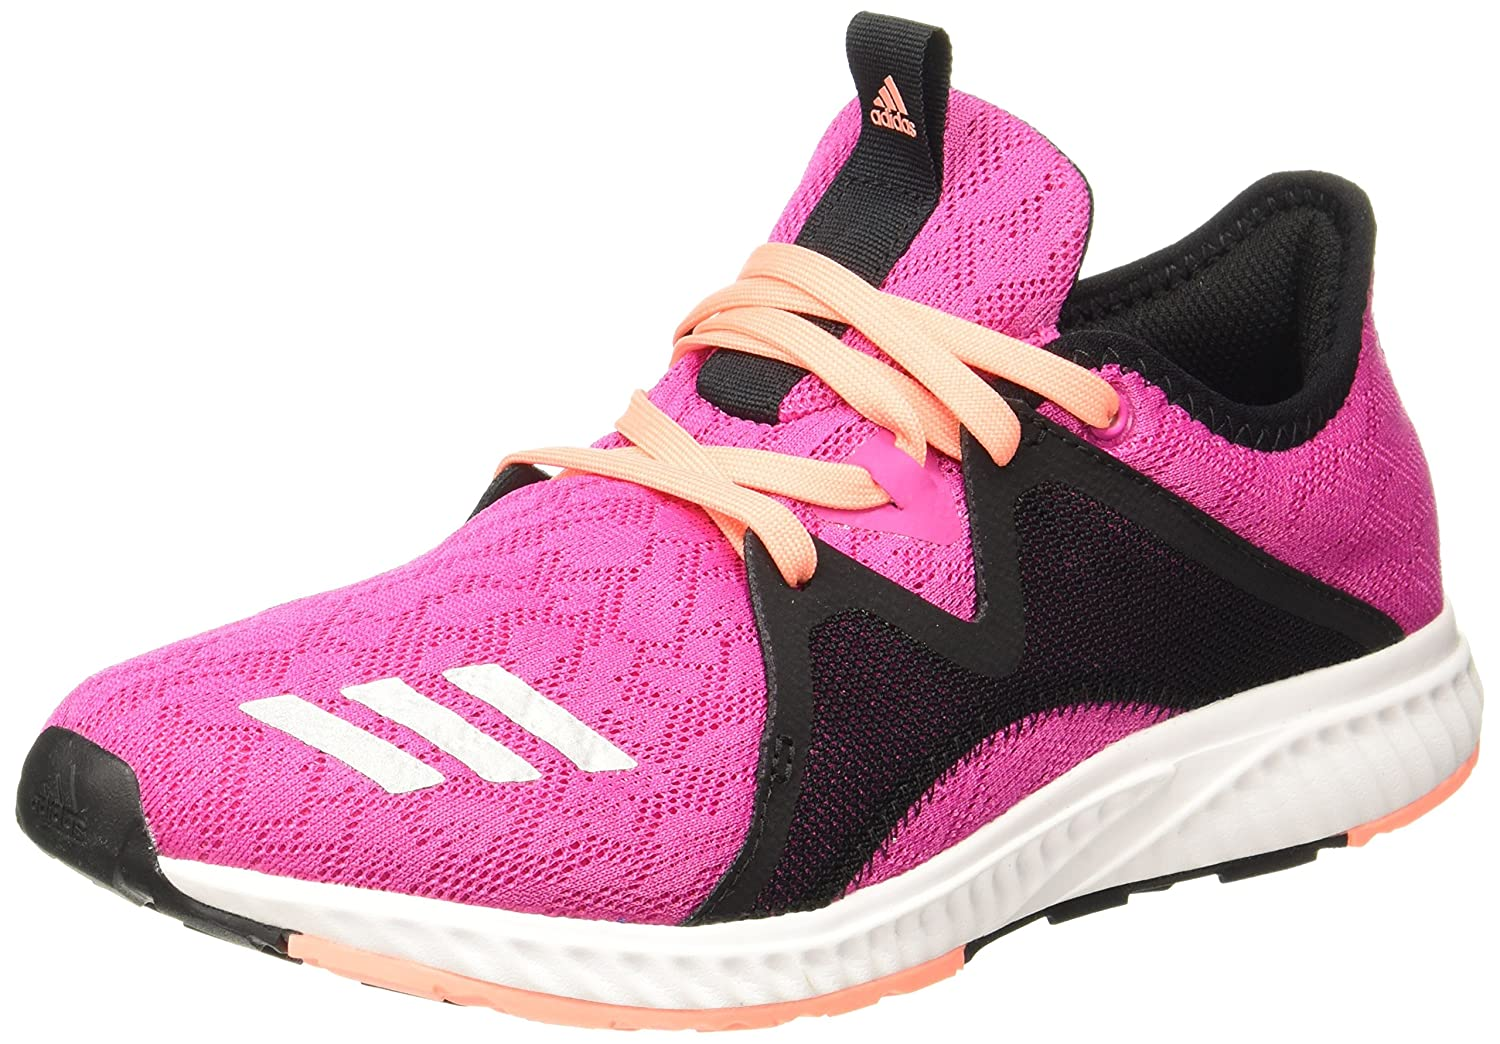 831d821e74 Adidas Women s Edge Lux 2 Bahmag Silvmt Sunglo Running Shoes - 4 UK India  (36.67 EU) (BW1428)  Amazon.in  Shoes   Handbags